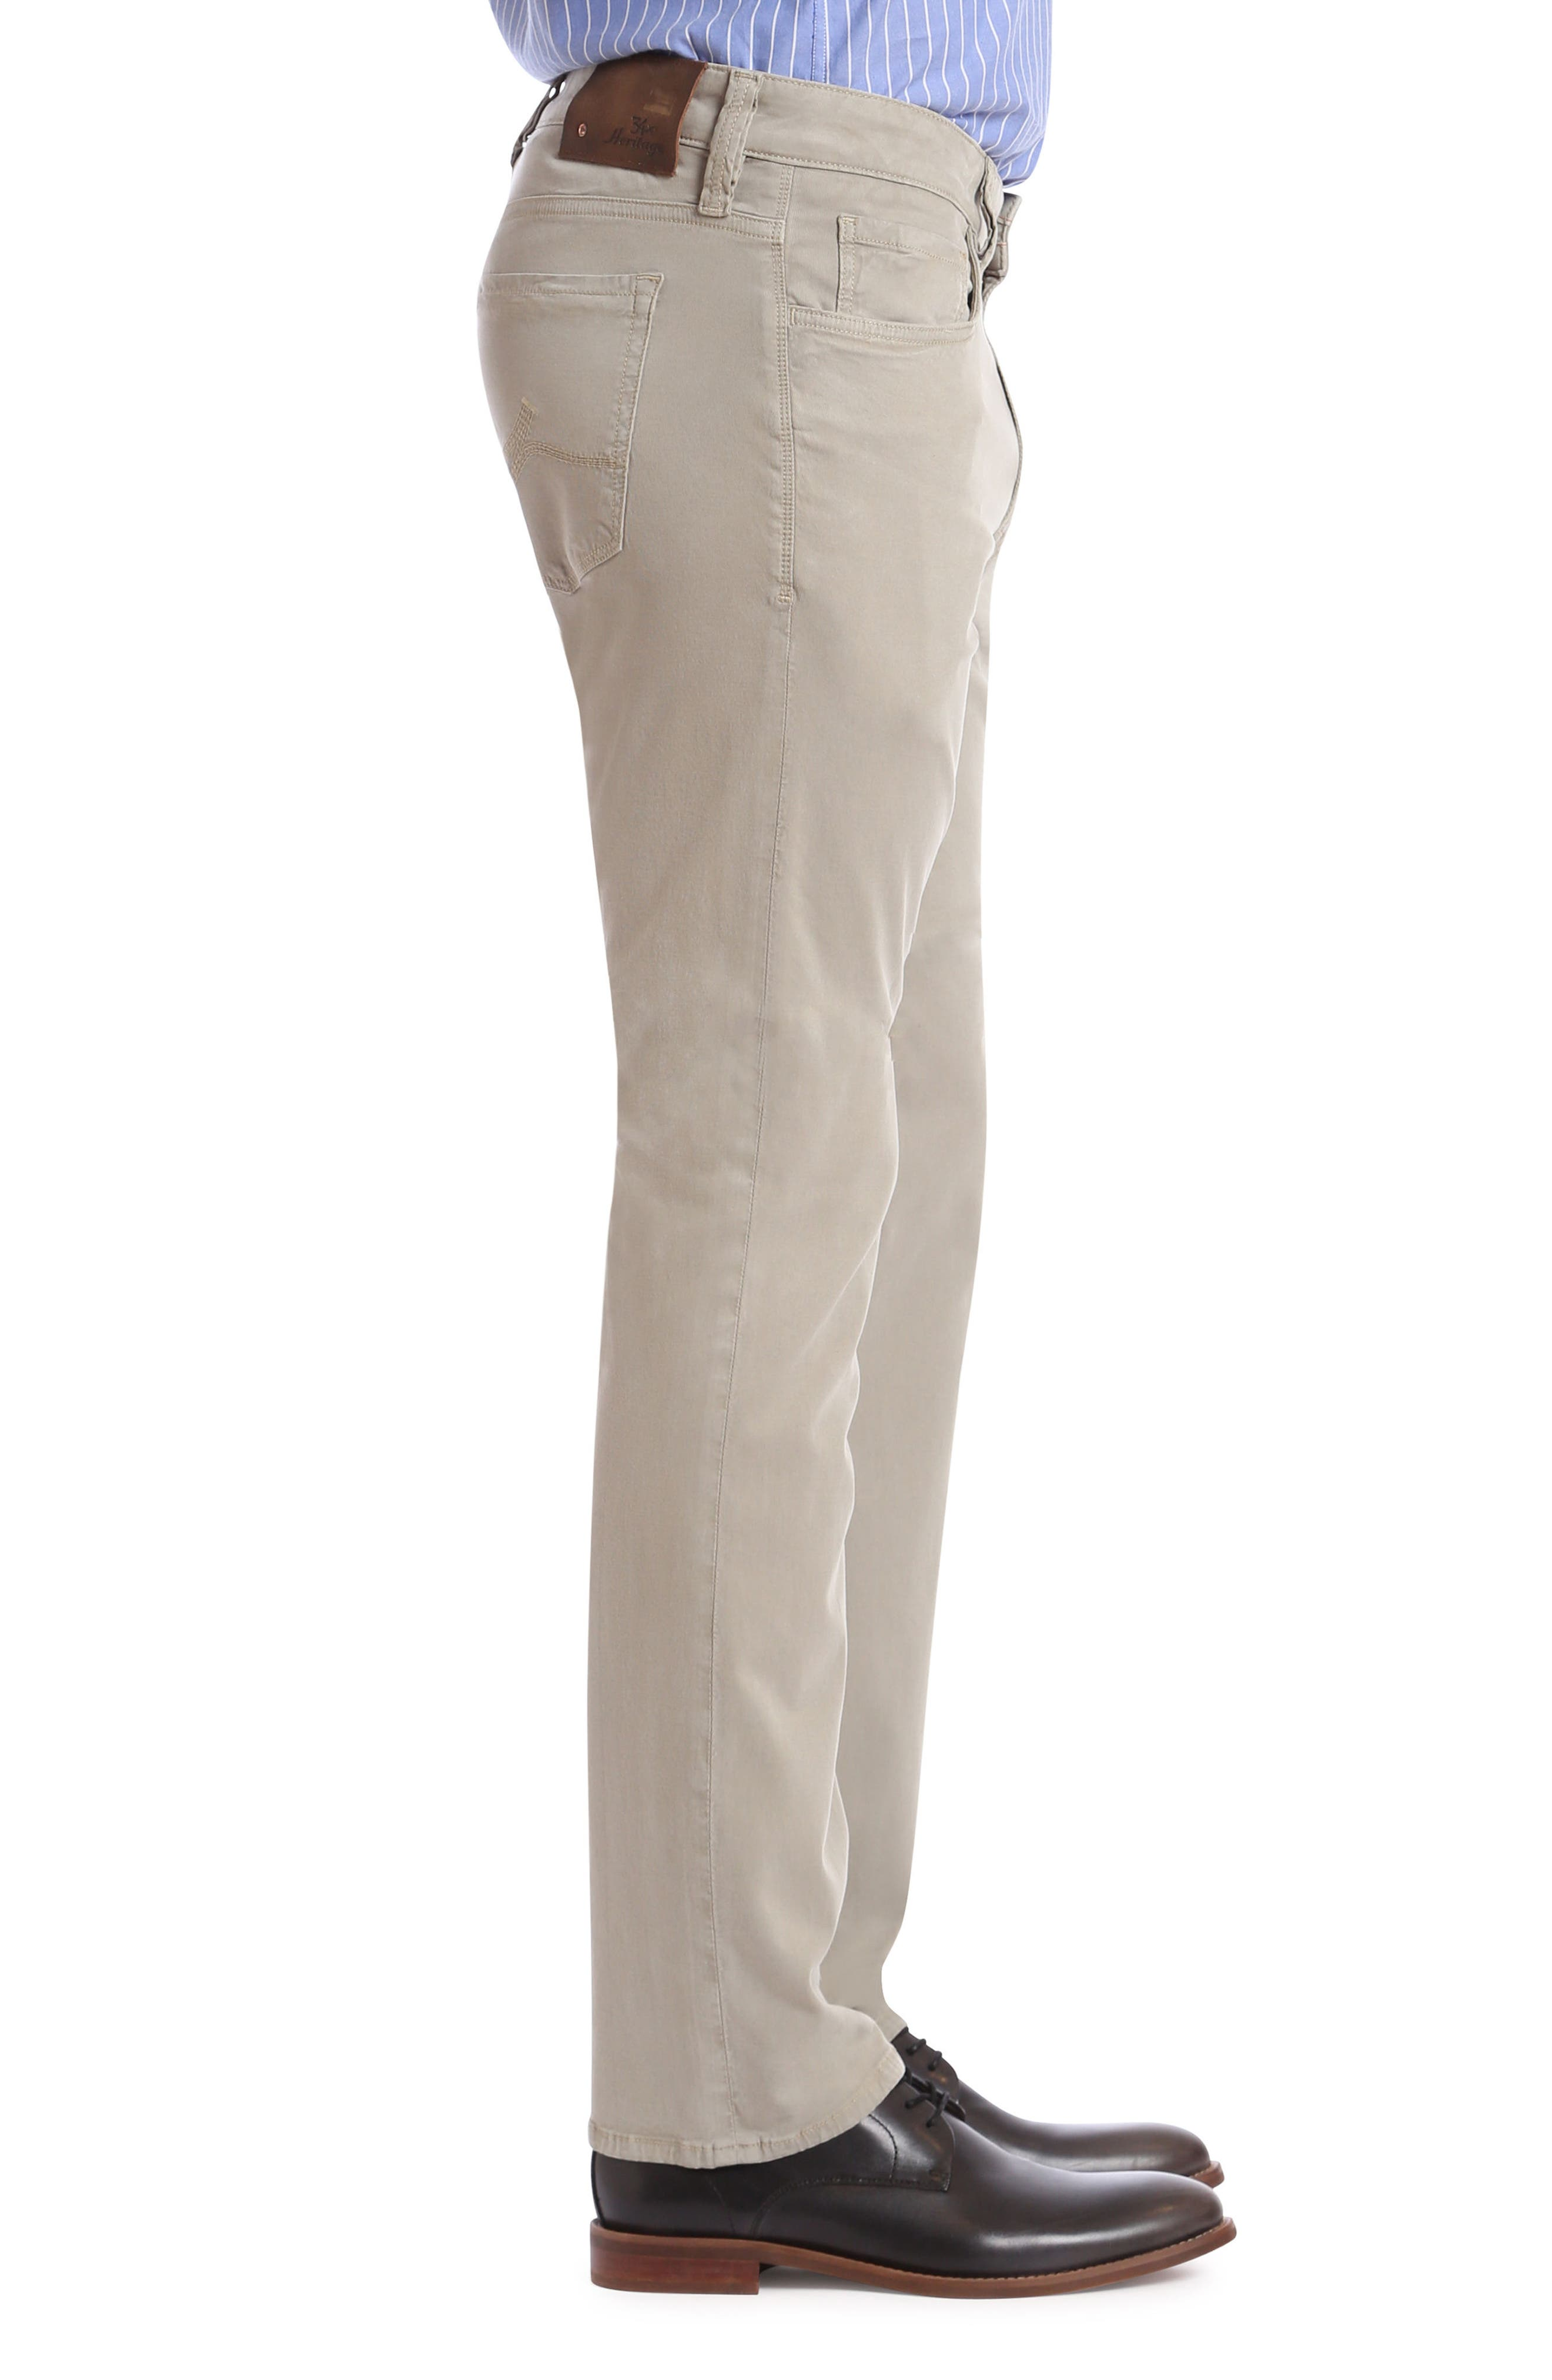 Charisma Relaxed Fit Jeans,                             Alternate thumbnail 3, color,                             FINE TWILL